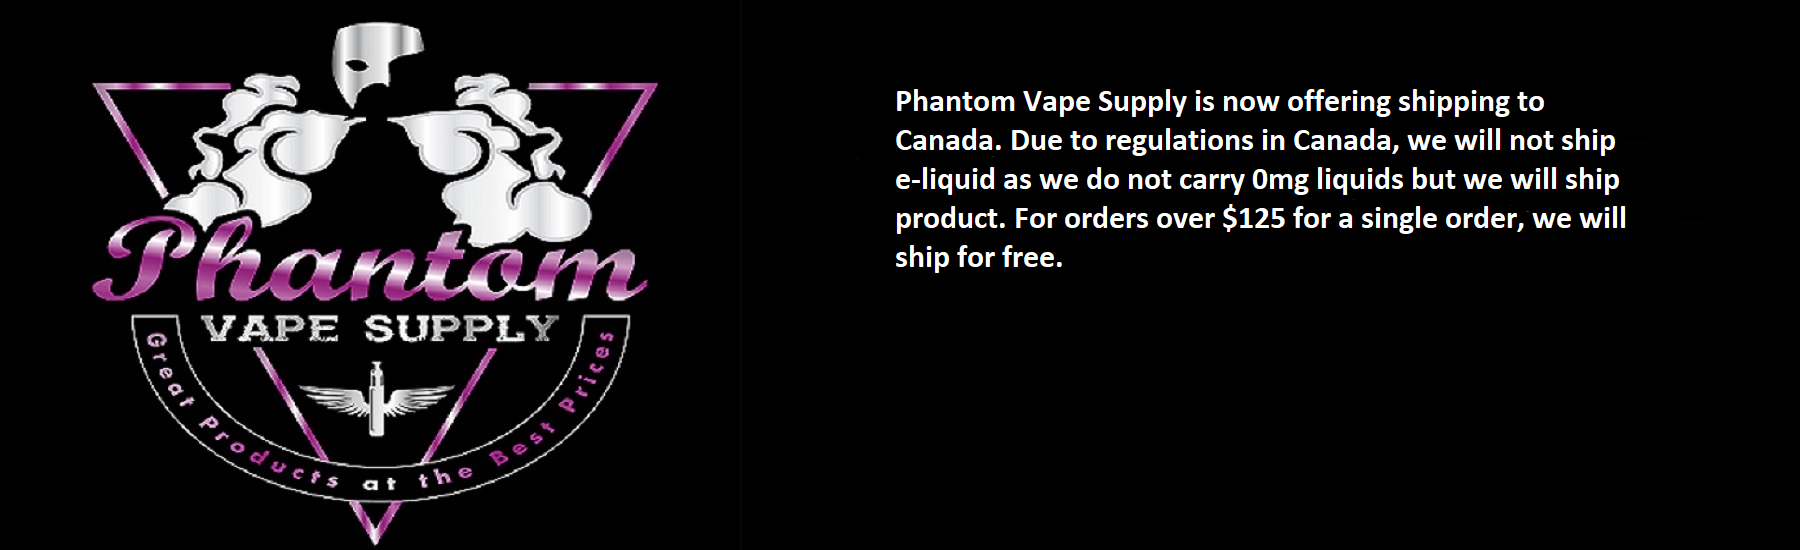 Phantom Vape Supply-Canada Shipping.png